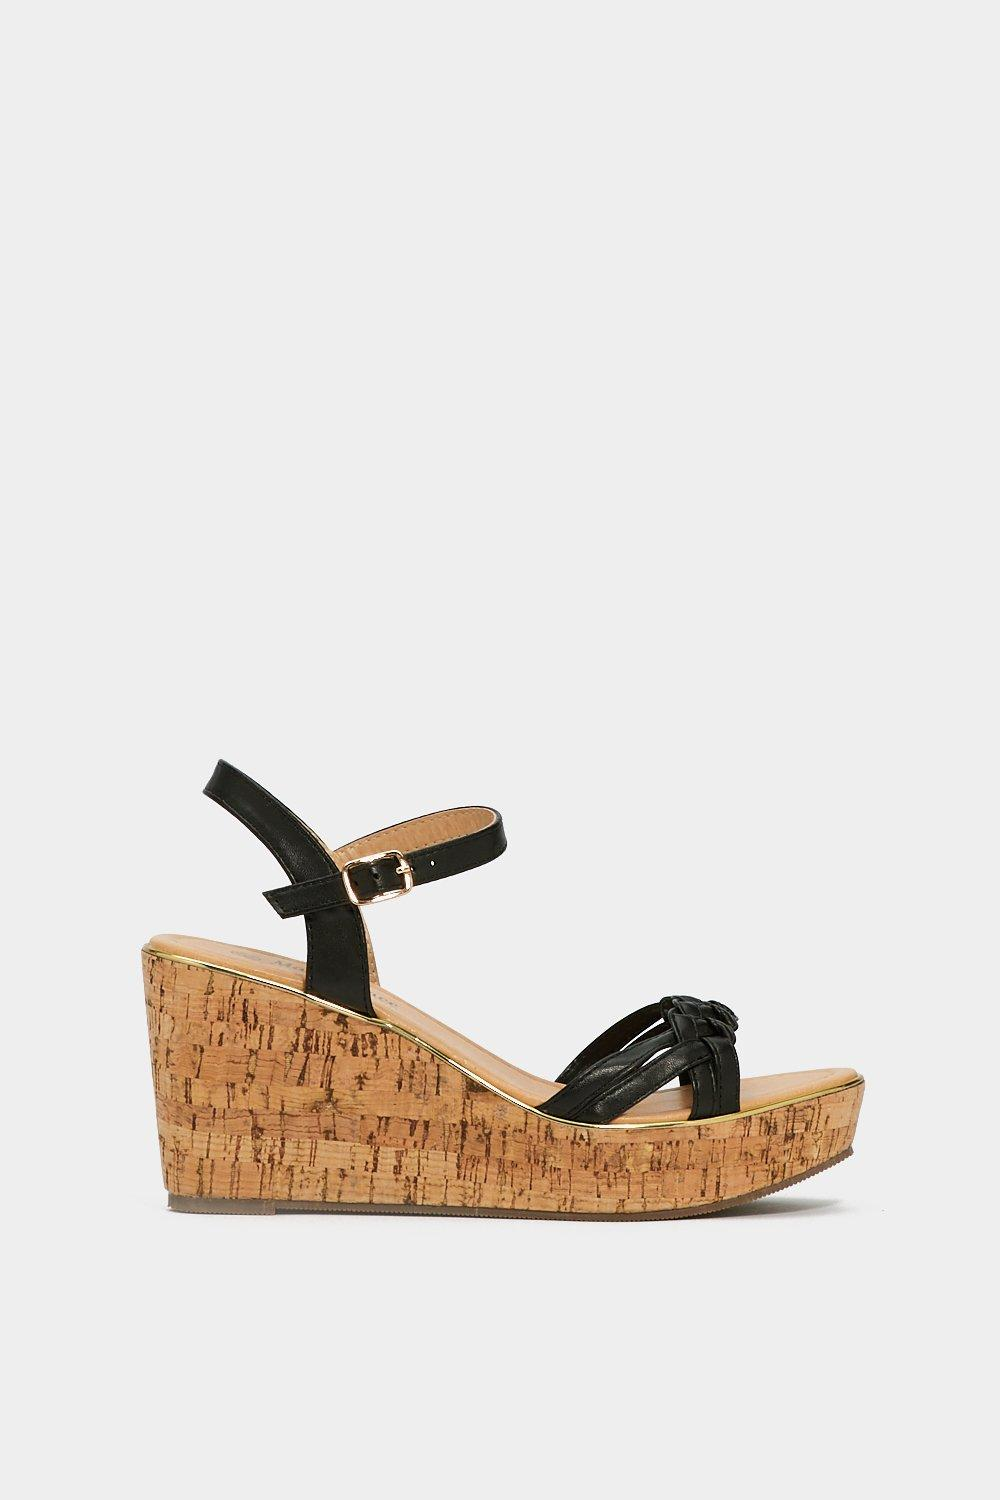 Build 'Em Up Faux Leather Wedge view for sale discount latest discount outlet store QL0bxV9V